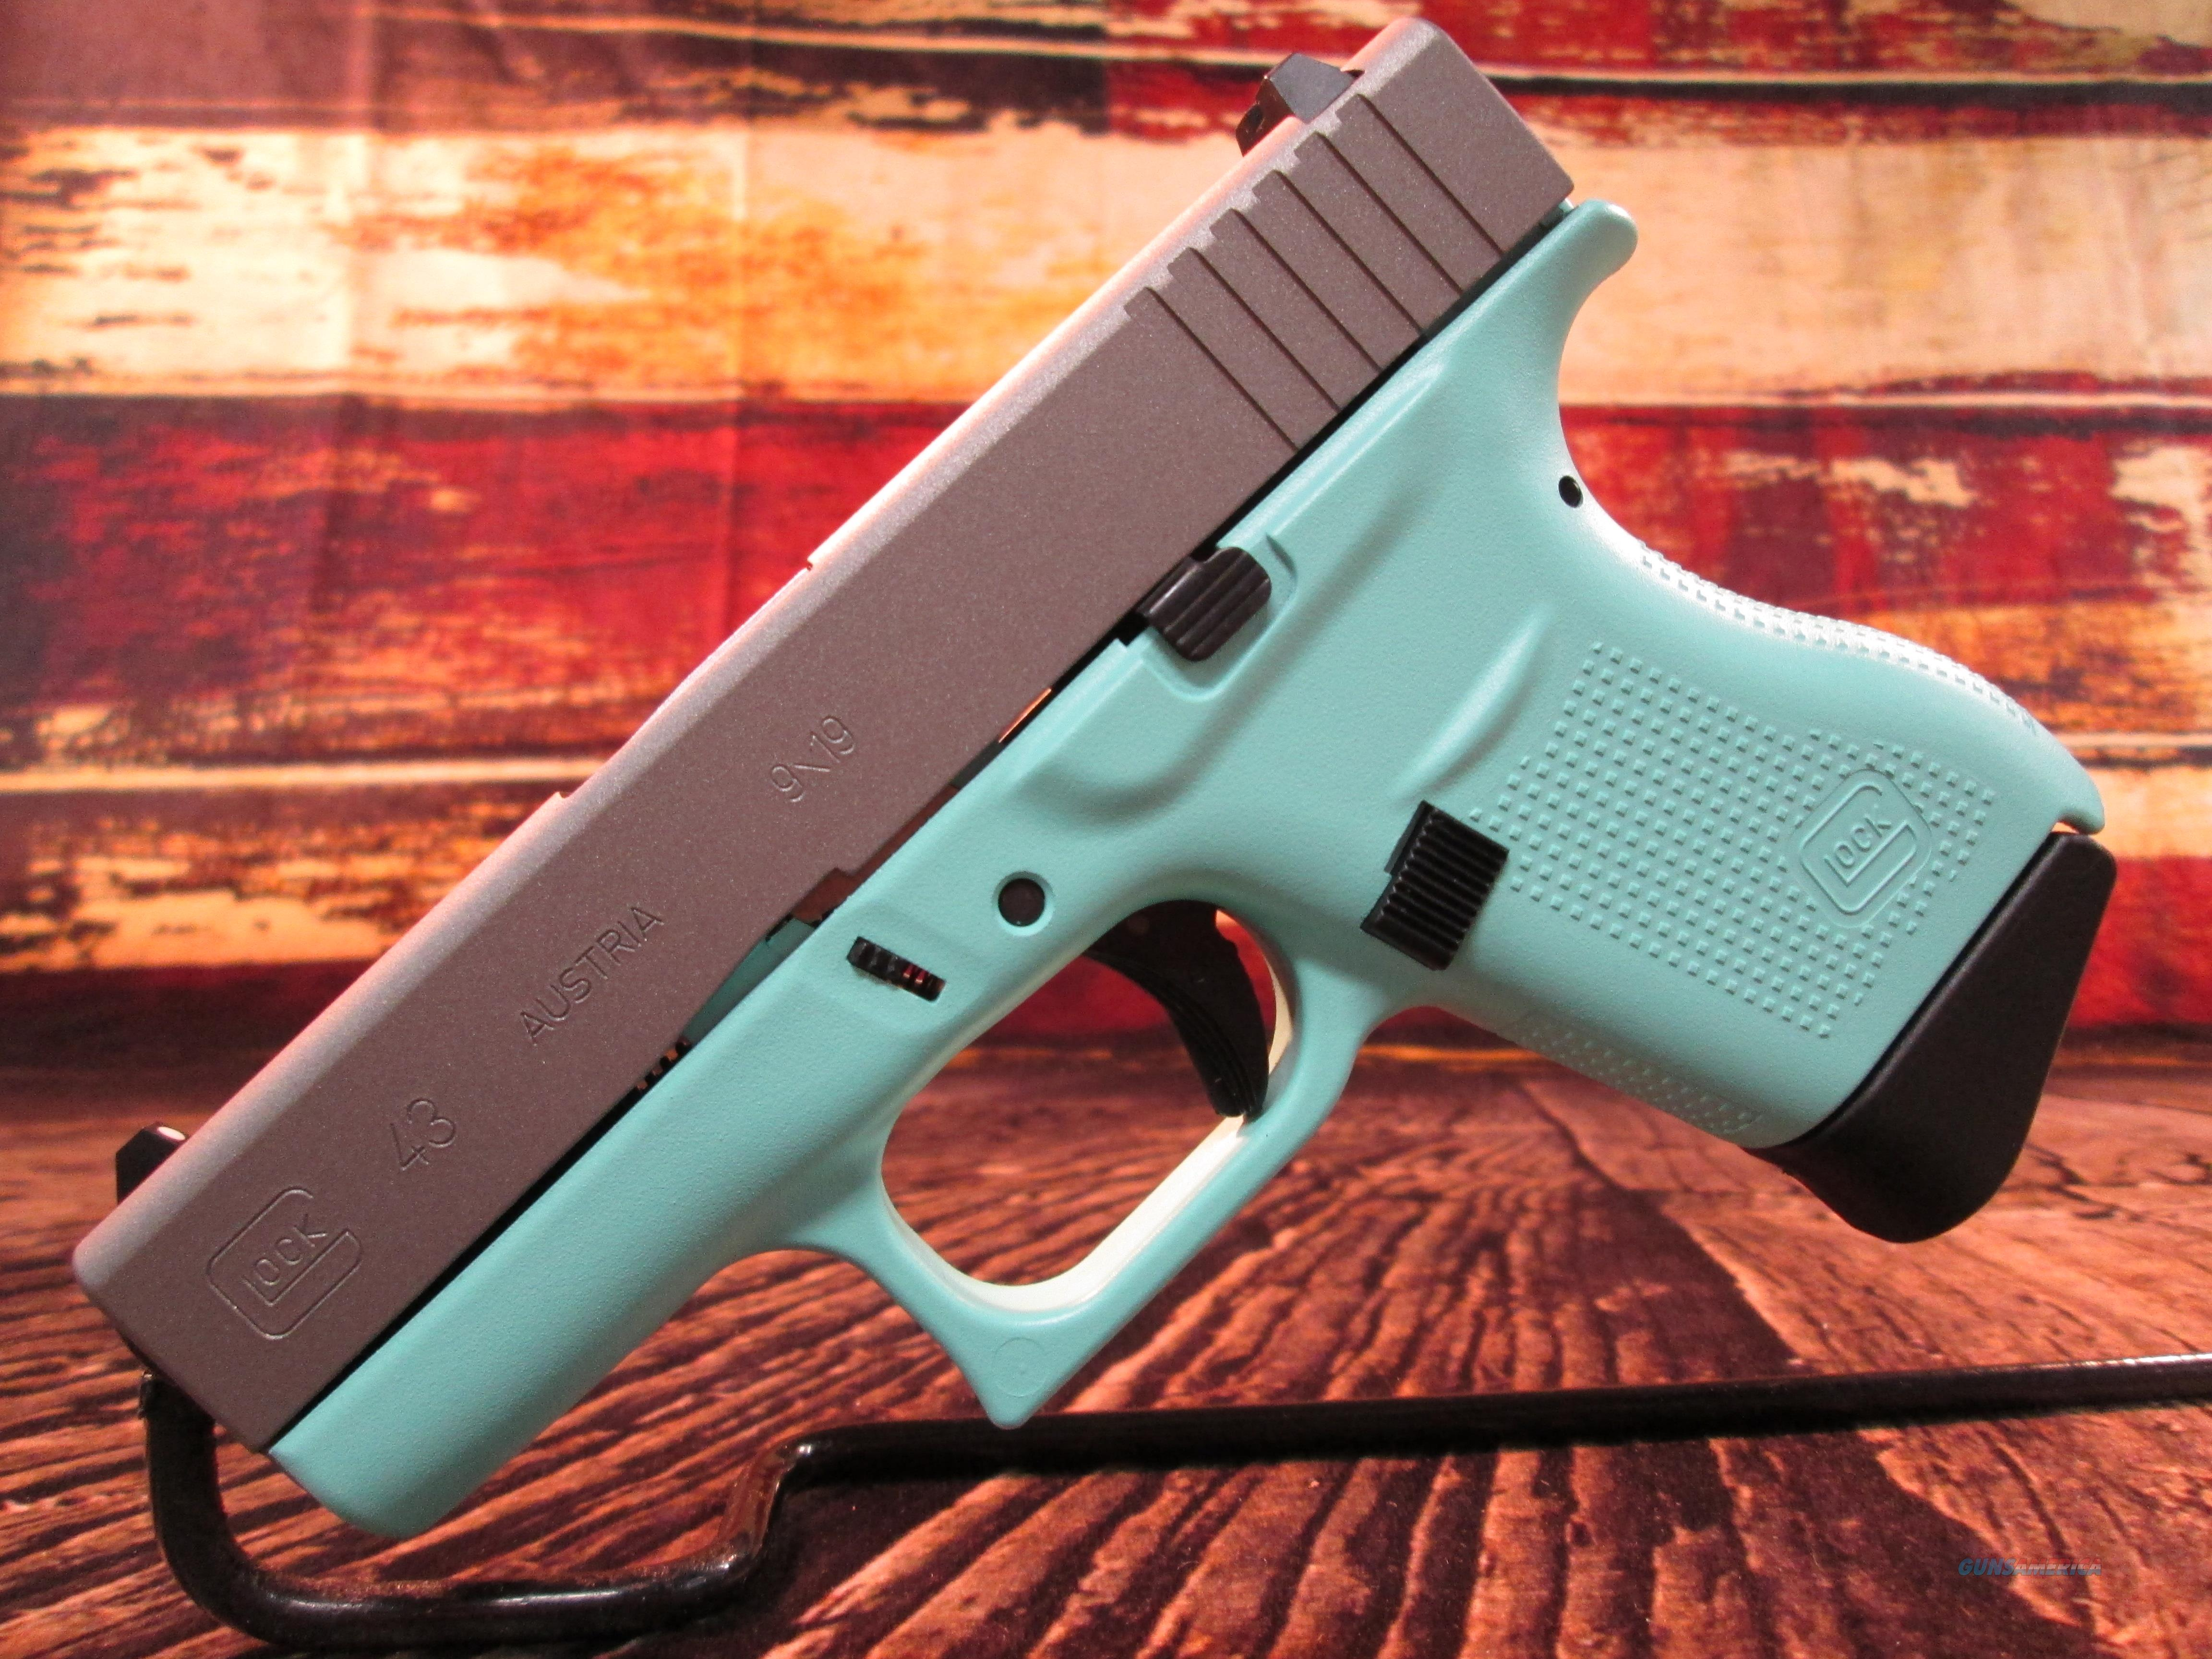 GLOCK 43 9MM EGG SHELL BLUE FRAME W/ STAINLESS STEEL SLIDE NEW (PI4350201EBSS)  Guns > Pistols > Glock Pistols > 43